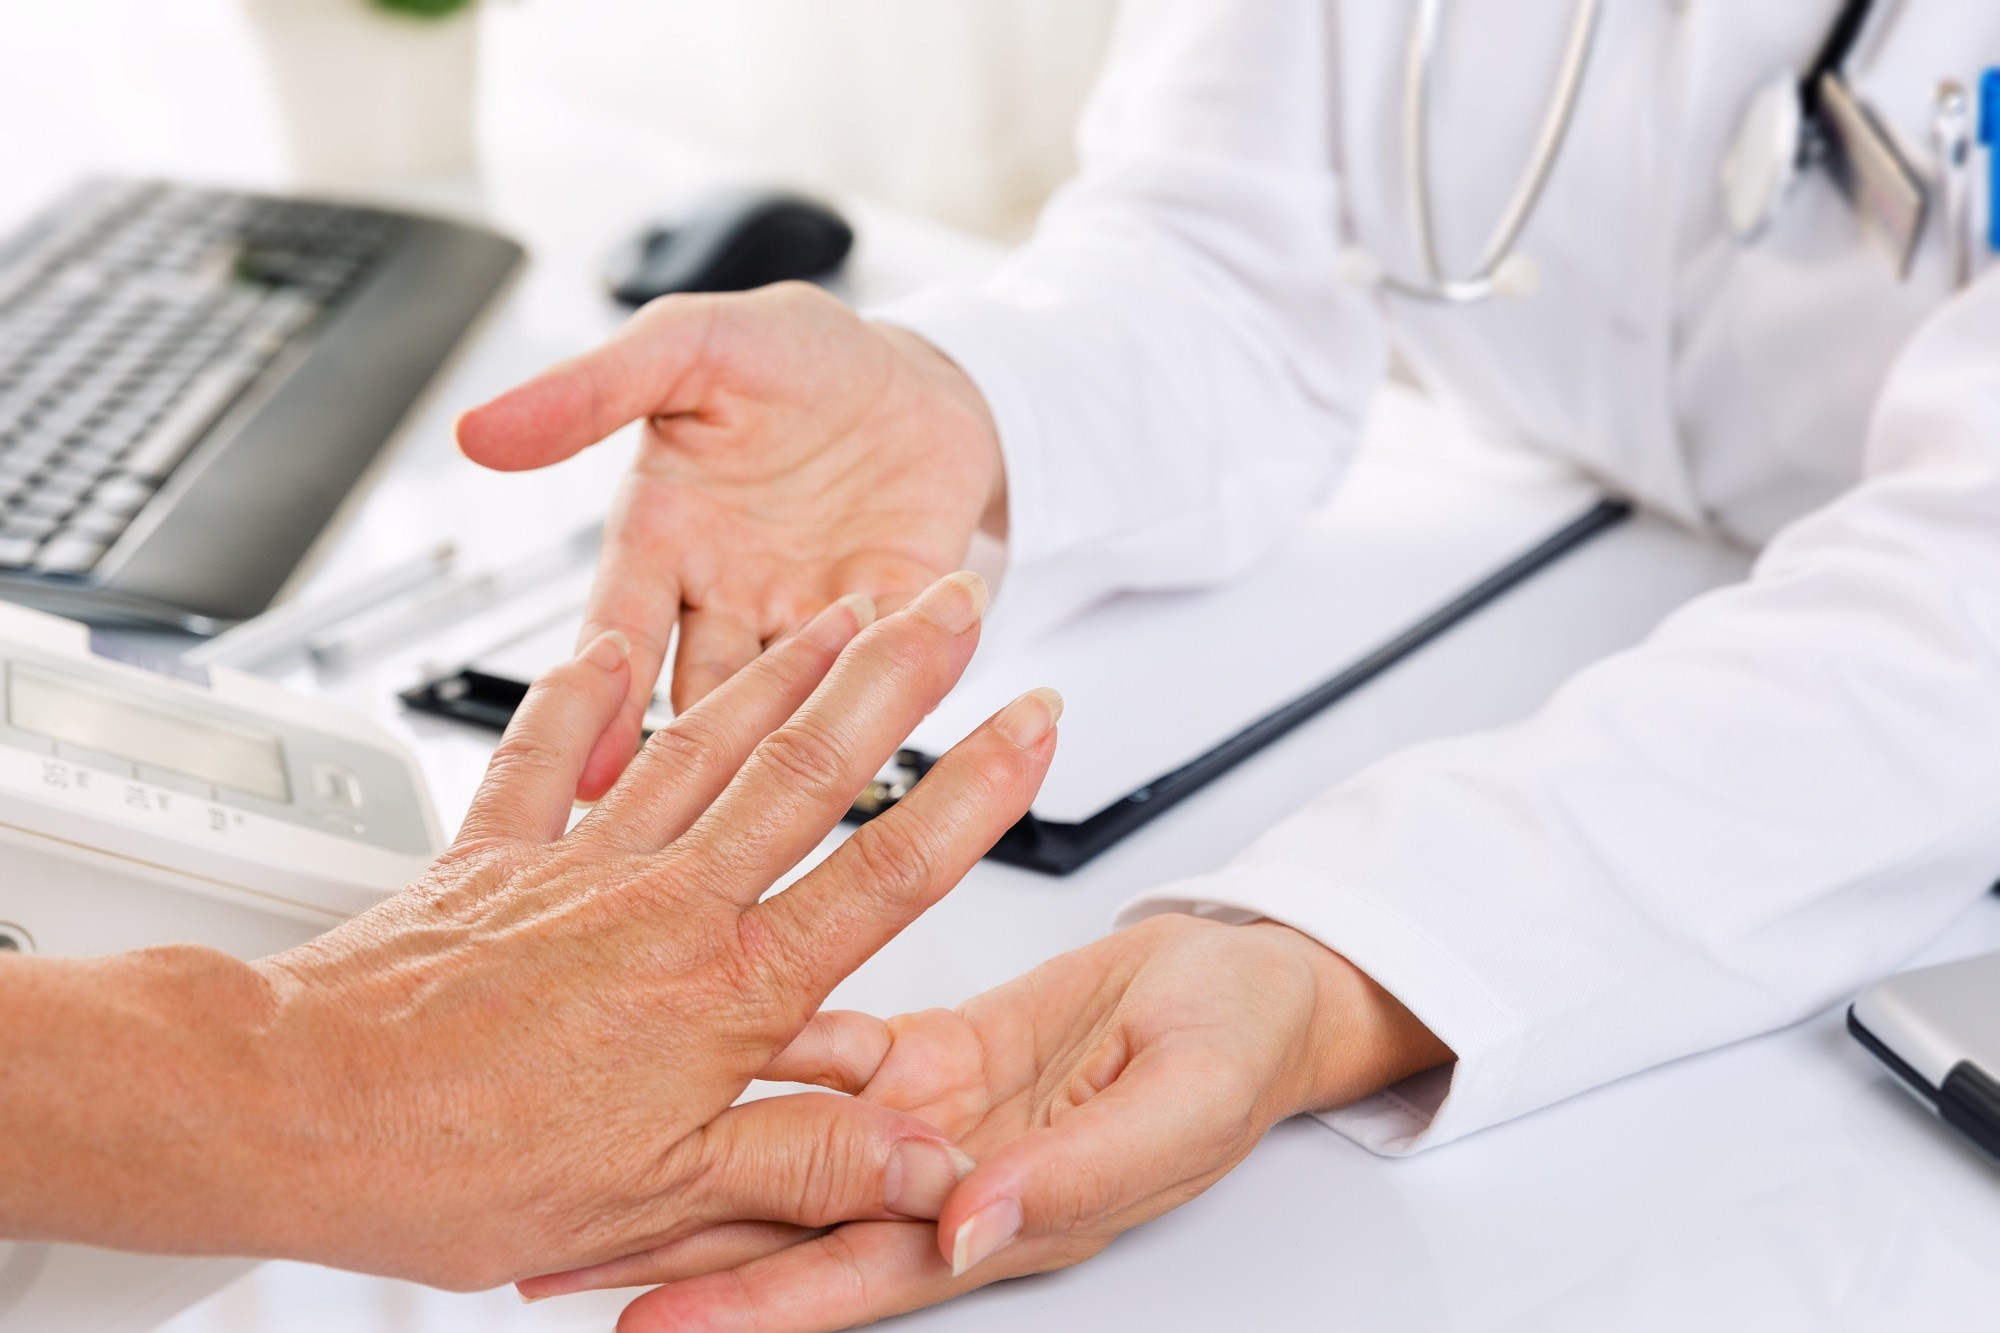 The concept of having nurse practitioners or clinical nurse specialists working together with physicians to meet the needs of patients with rheumatoid arthritis is becoming much more common.